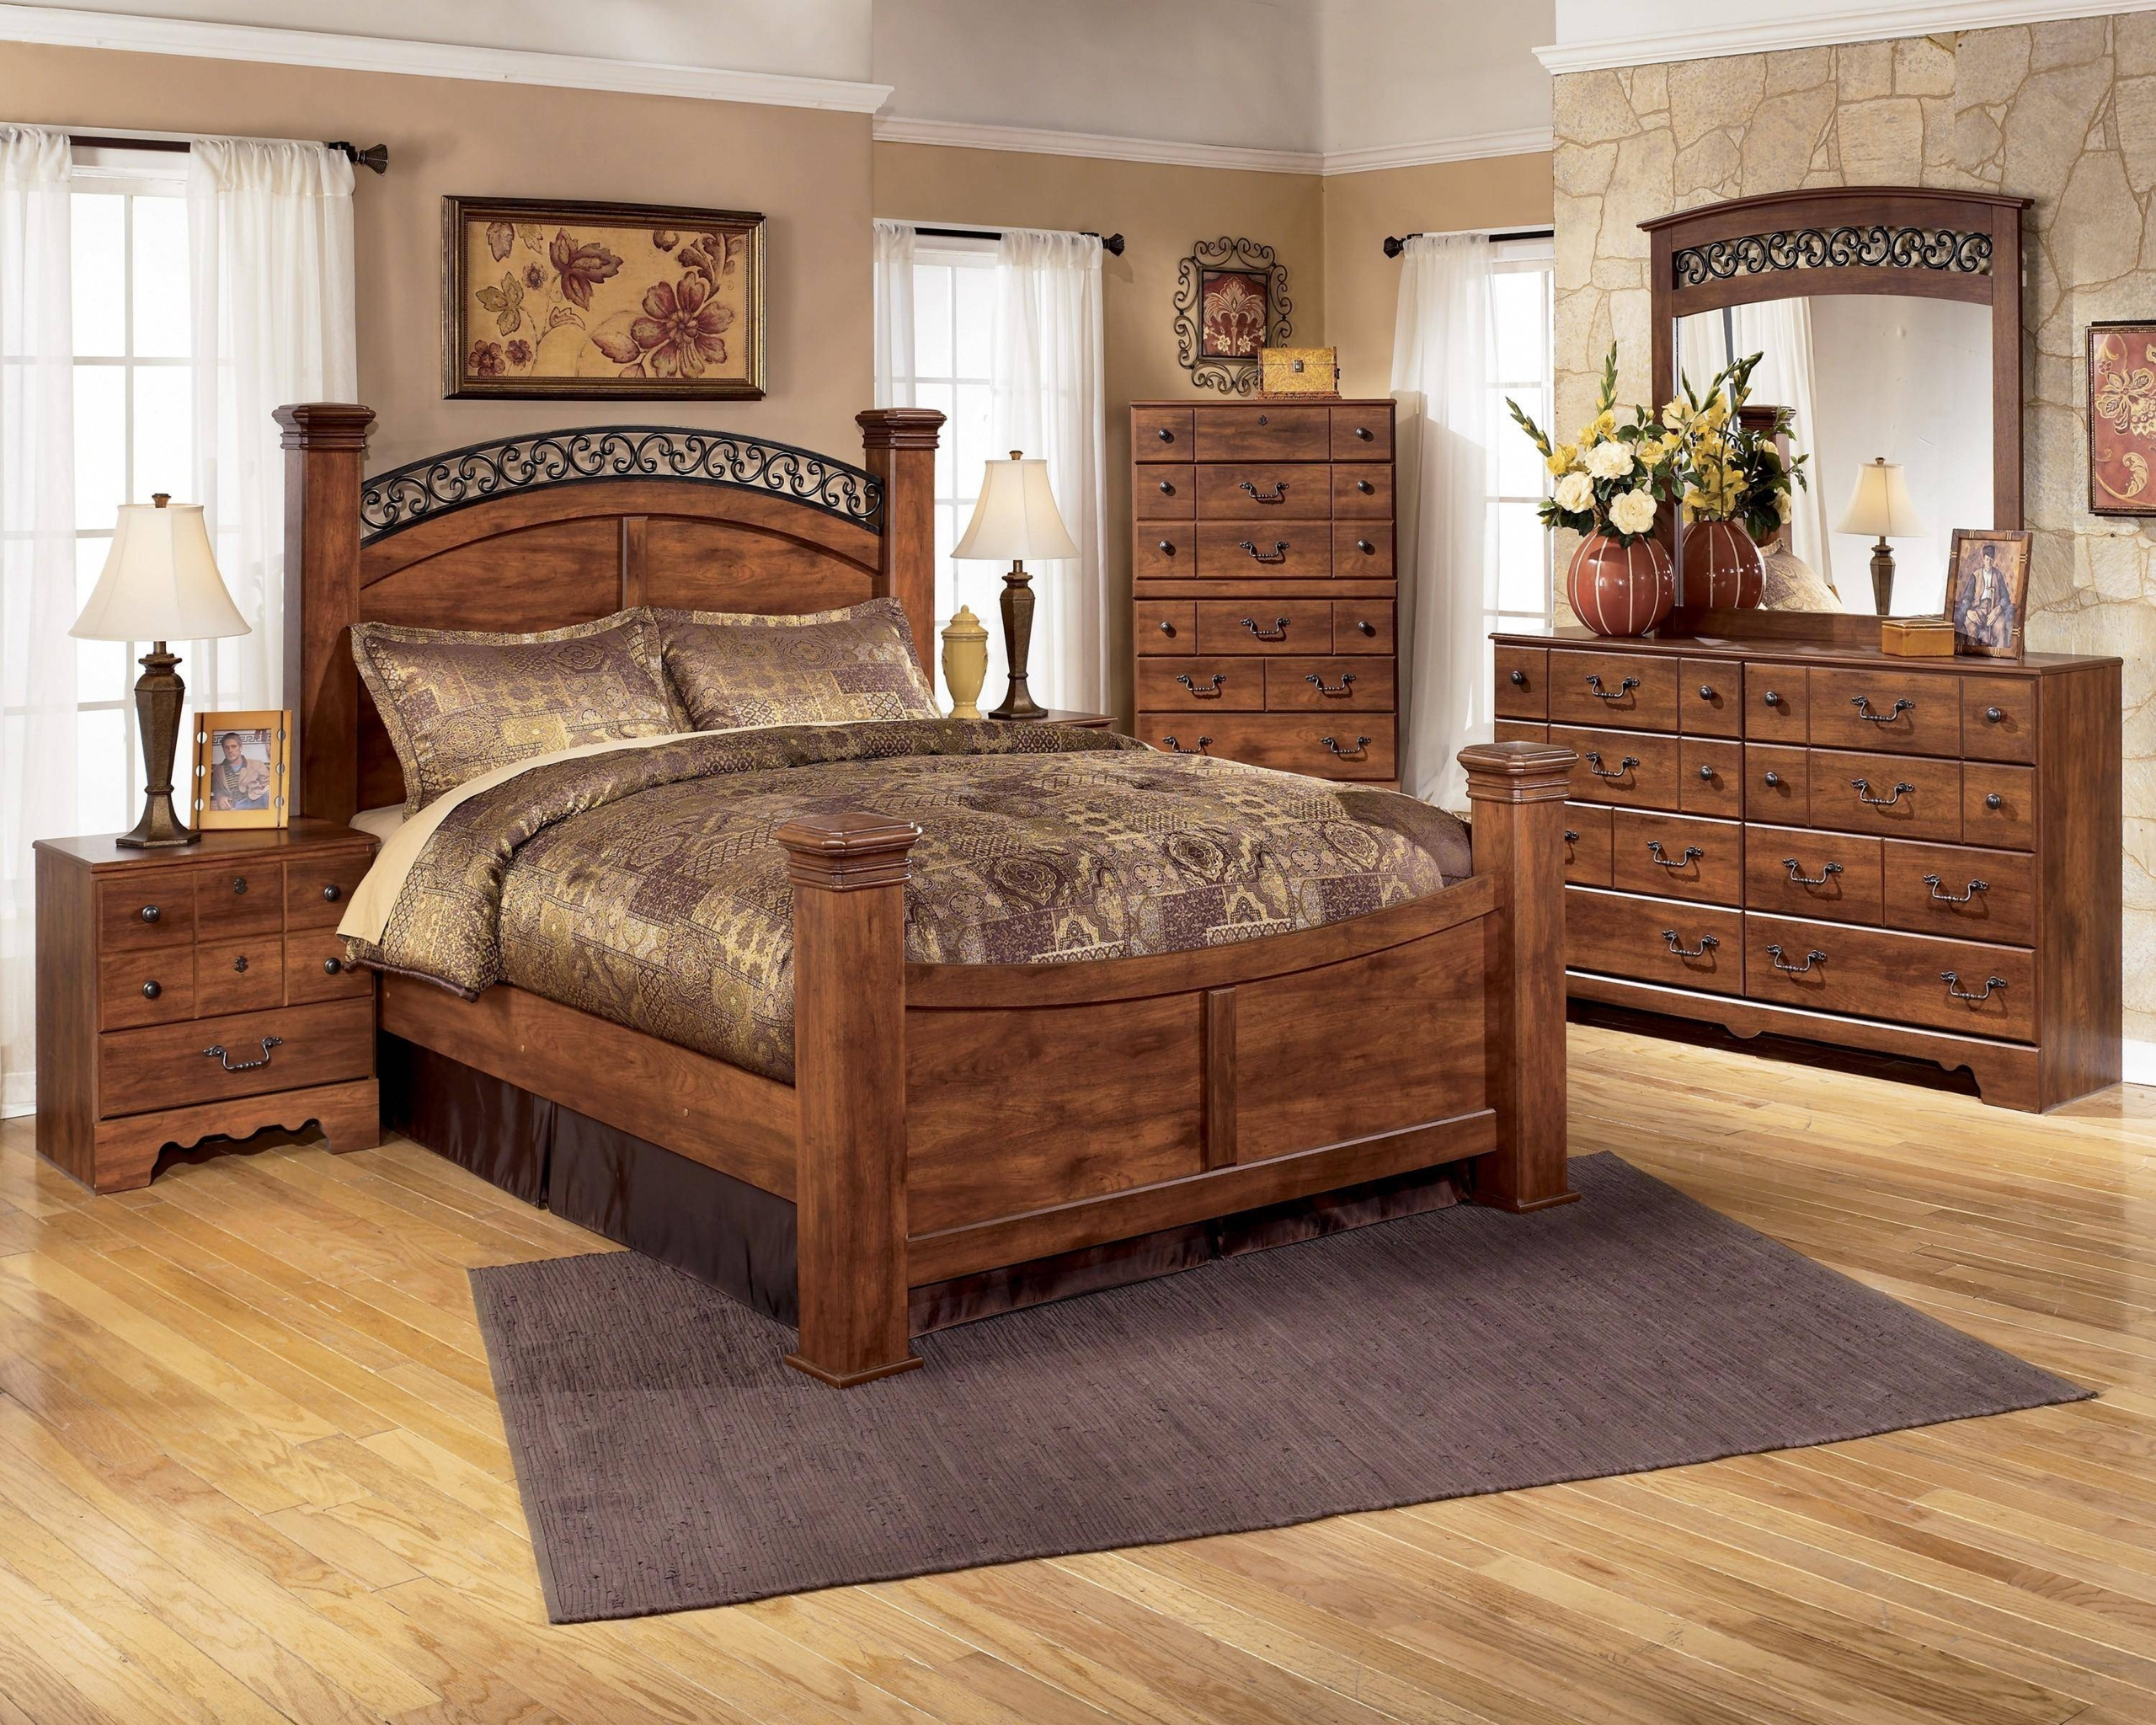 Beau Metal And Wood Bedroom Sets